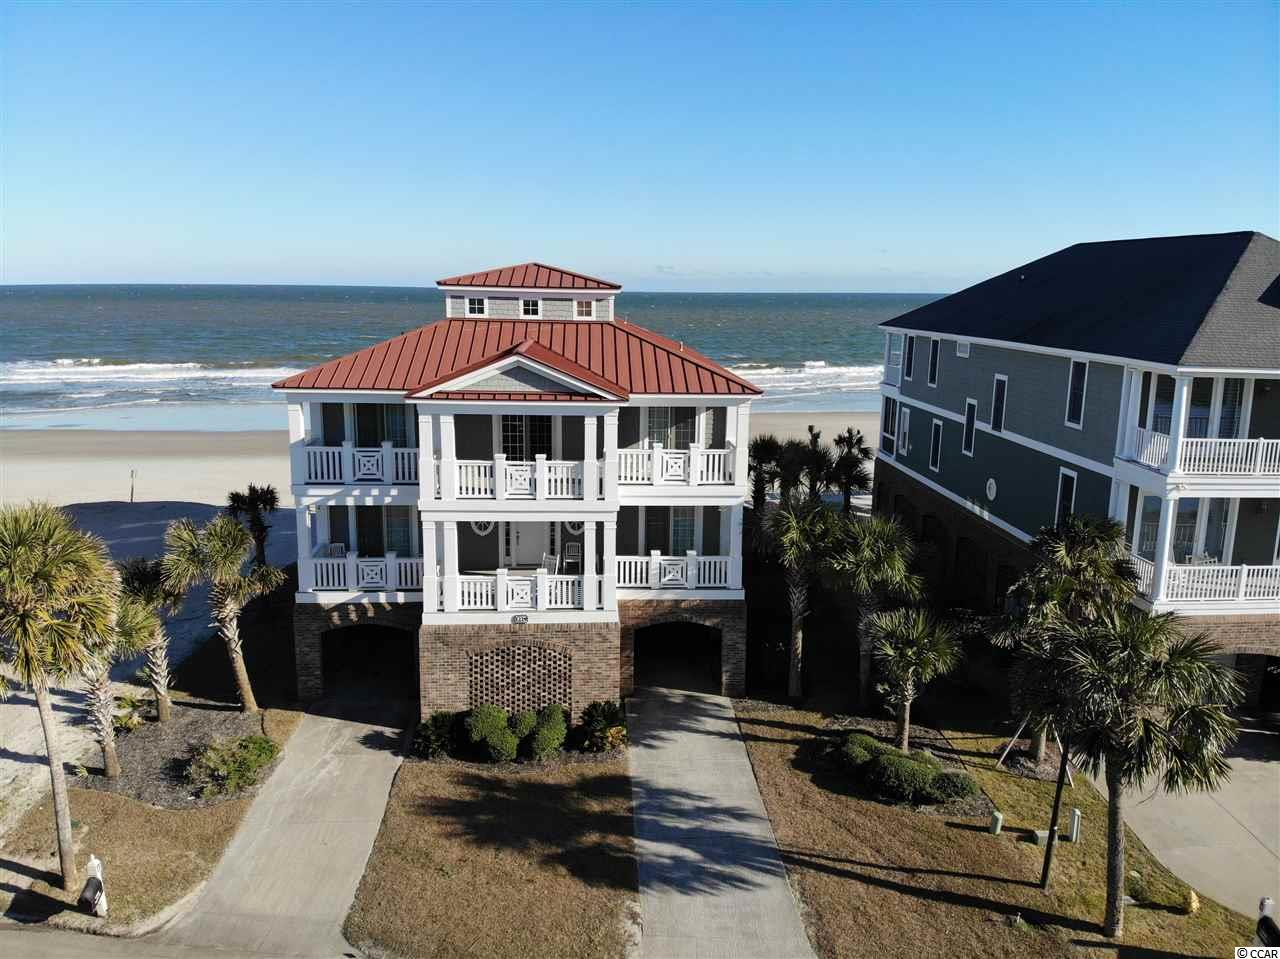 1229 Norris Dr., Pawleys Island, South Carolina 7 Bedroom as one of Homes & Land Real Estate